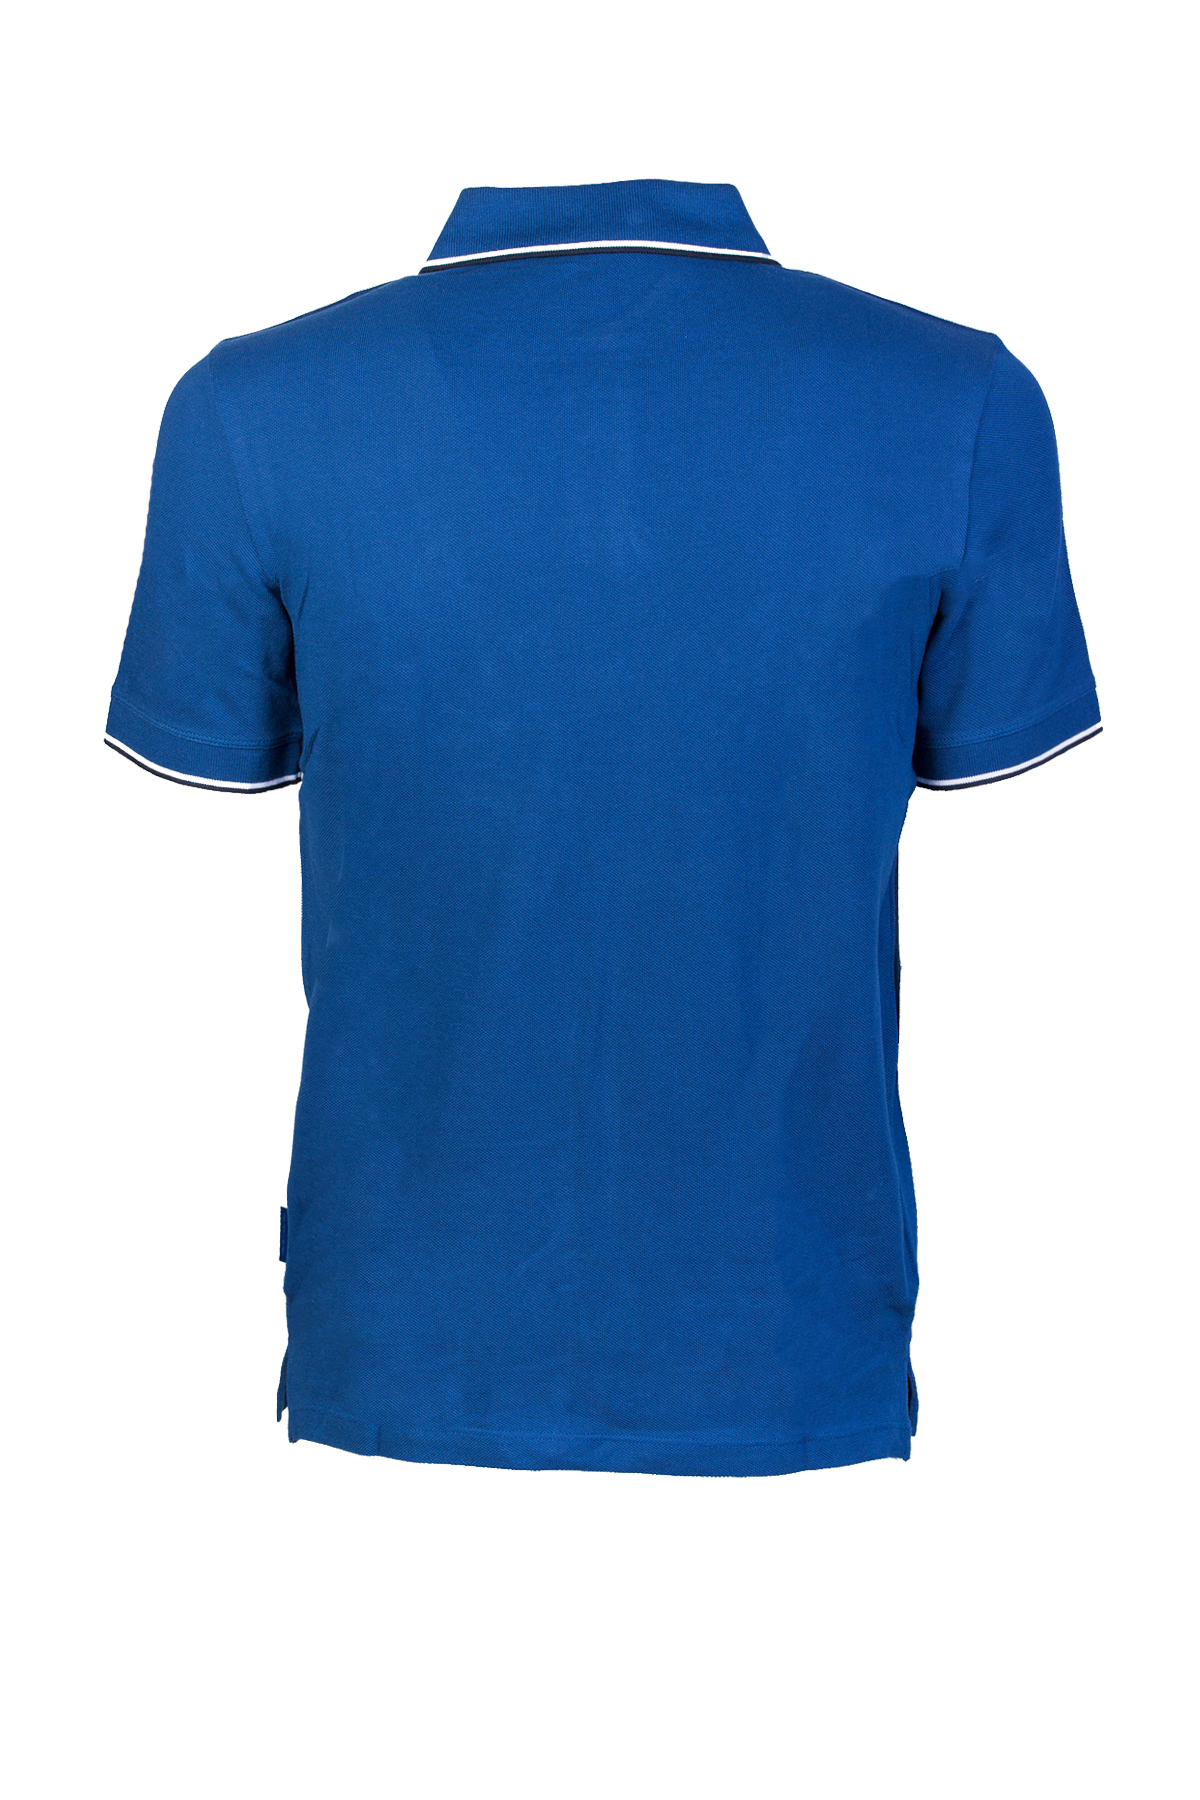 POLO CON BORDI A CONTRASTO AX ARMANI EXCHANGE | Polo | 8NZF75Z8M5Z1520DEEPBLUE